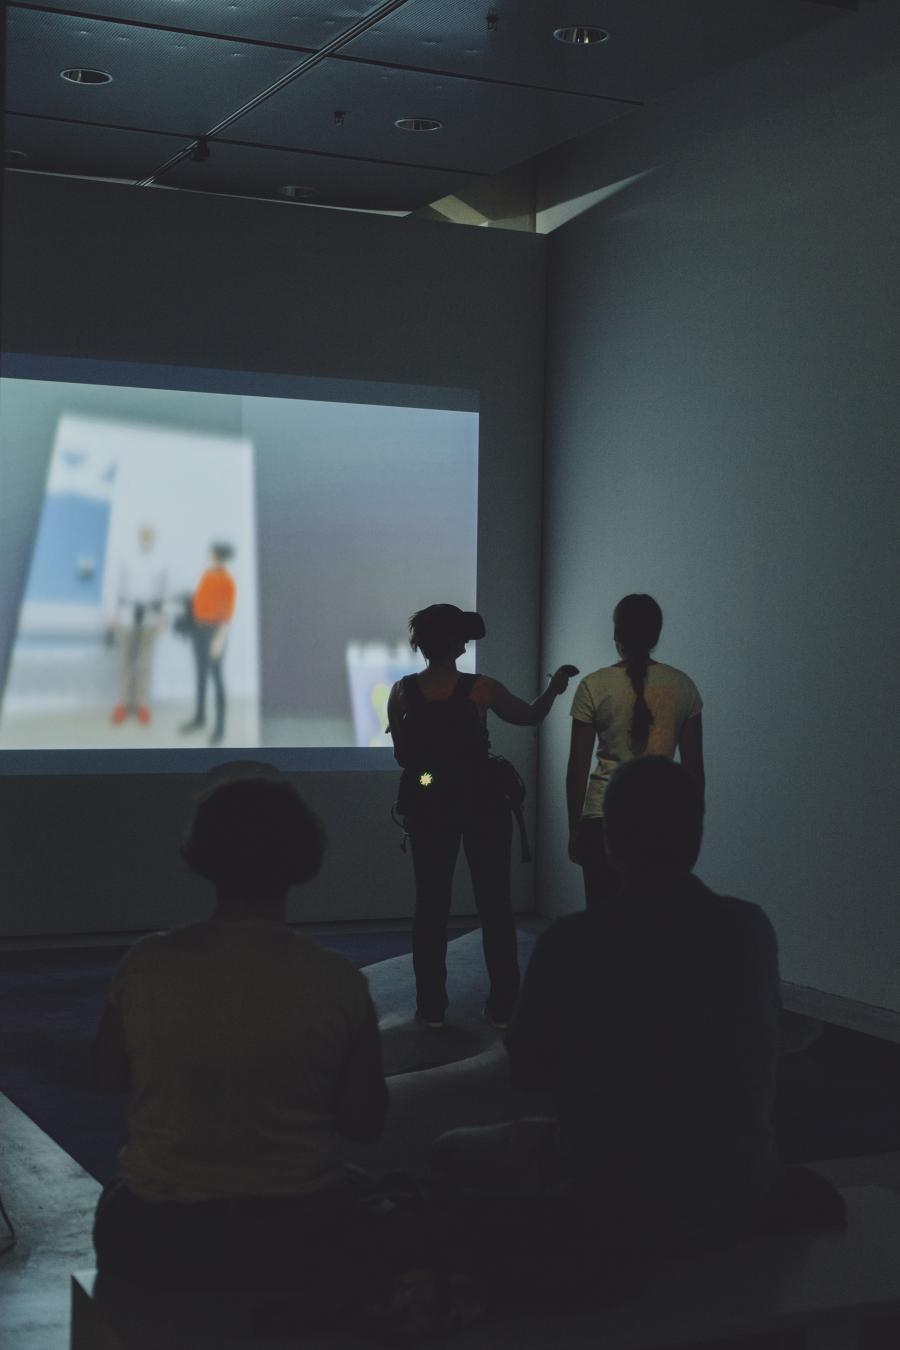 The picture shows a visitor wearing VR glasses